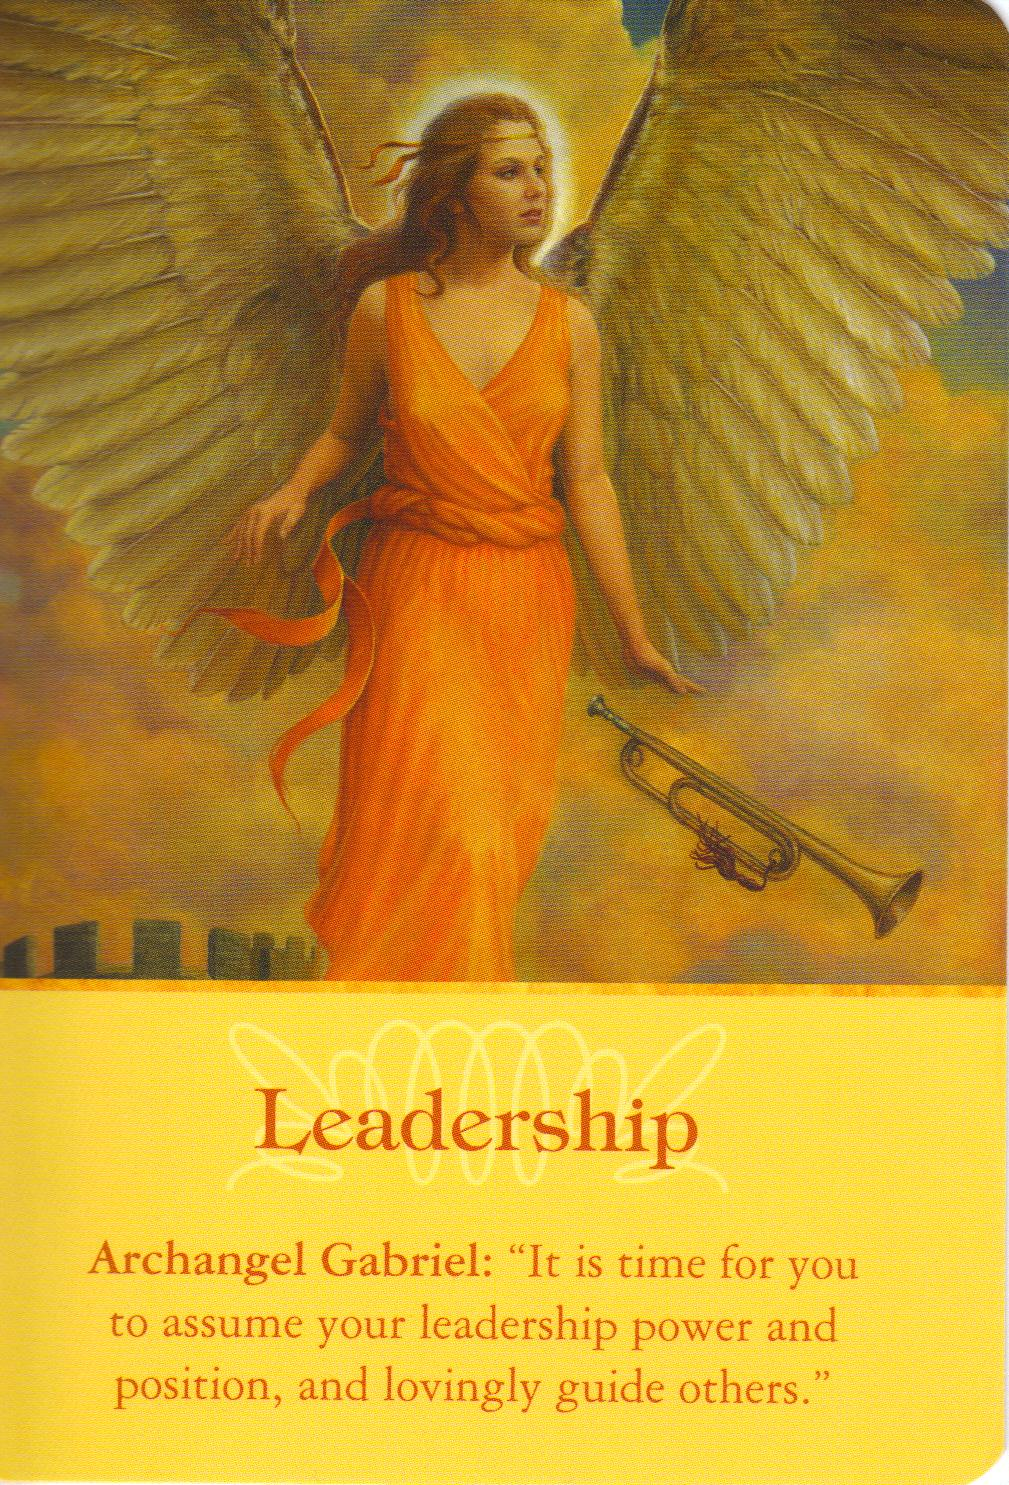 Archangel Oracle Divine Guidance: Got Angel? : Archangel Oracle Card For 5-10-13 Leadership